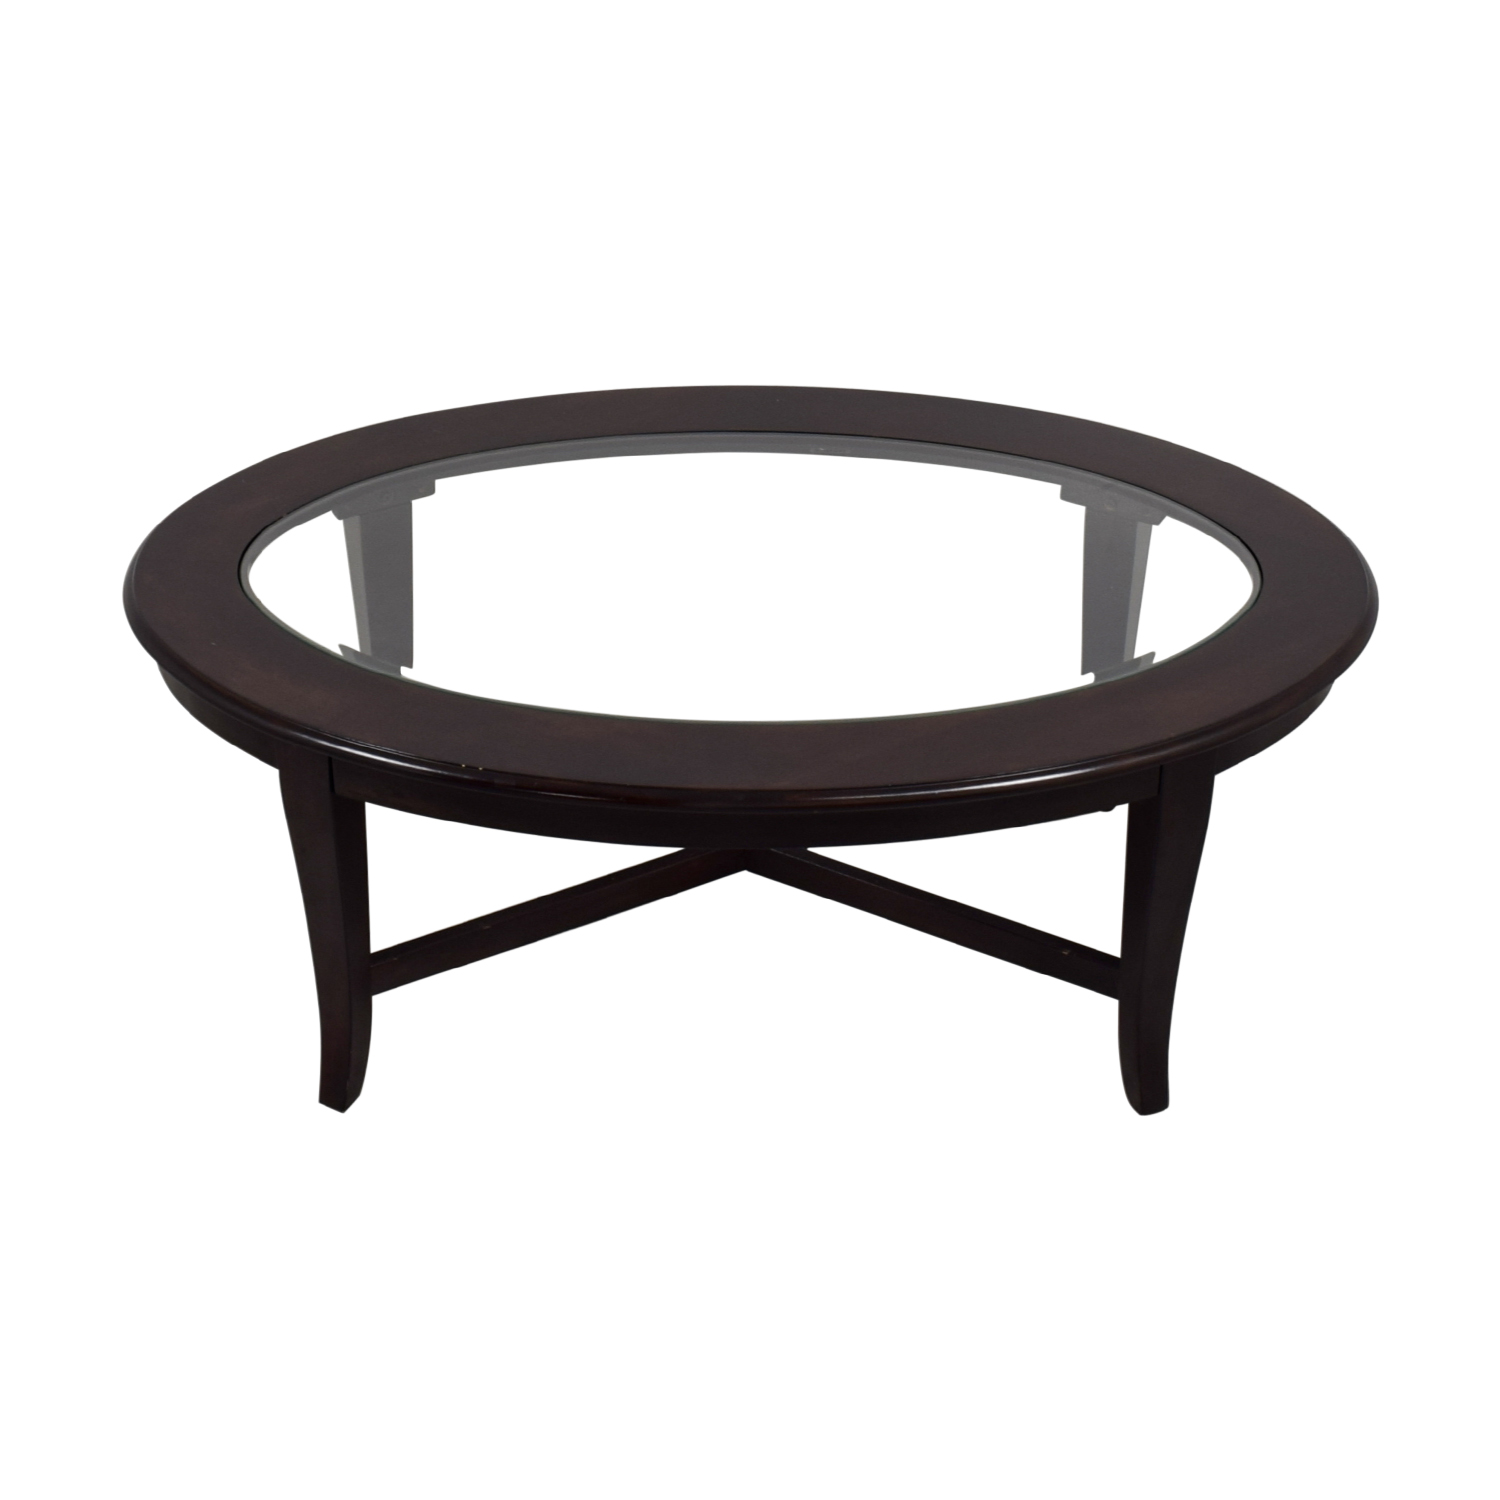 Bob's Furniture Bob's Furniture Oval Glass Coffee Table discount